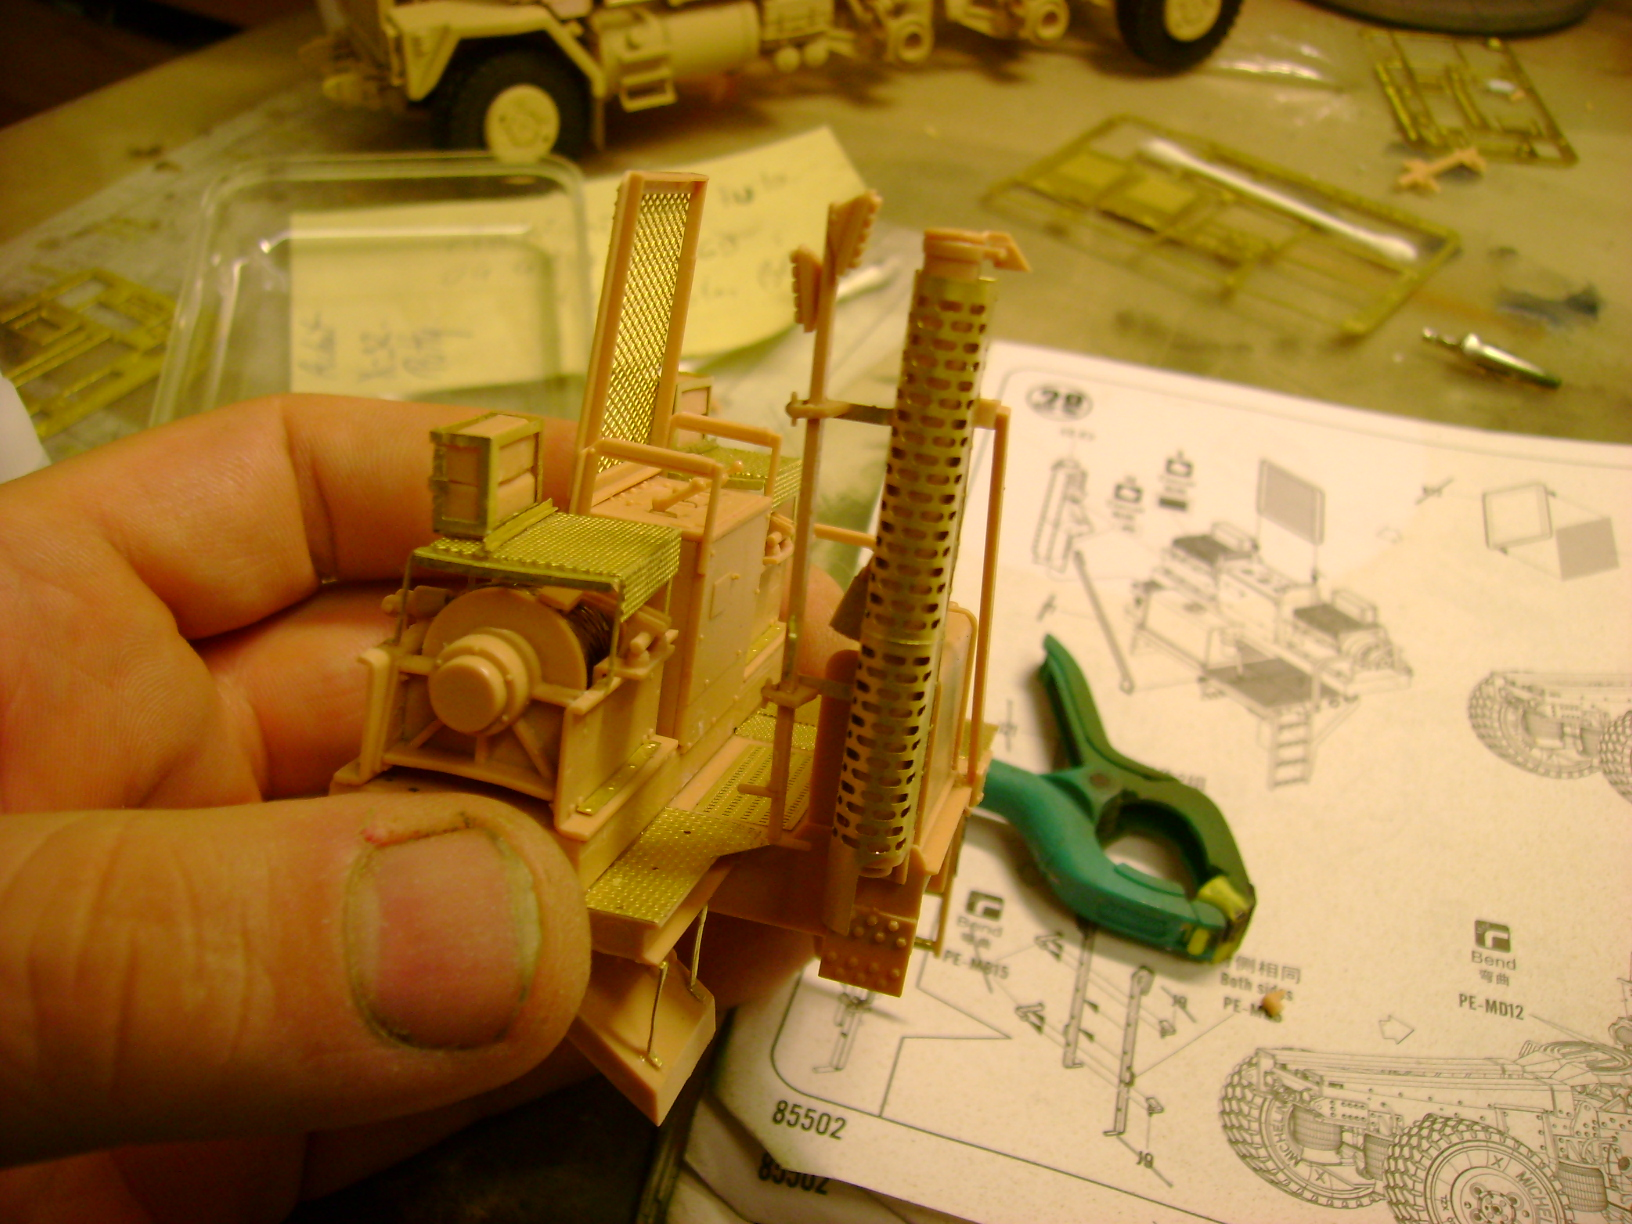 M1070 Truck Tractor & M1000 Semi-Trailer By T-bird!!!!! 1/35 Hobby Boss.Up du01/02.... - Page 4 111pc